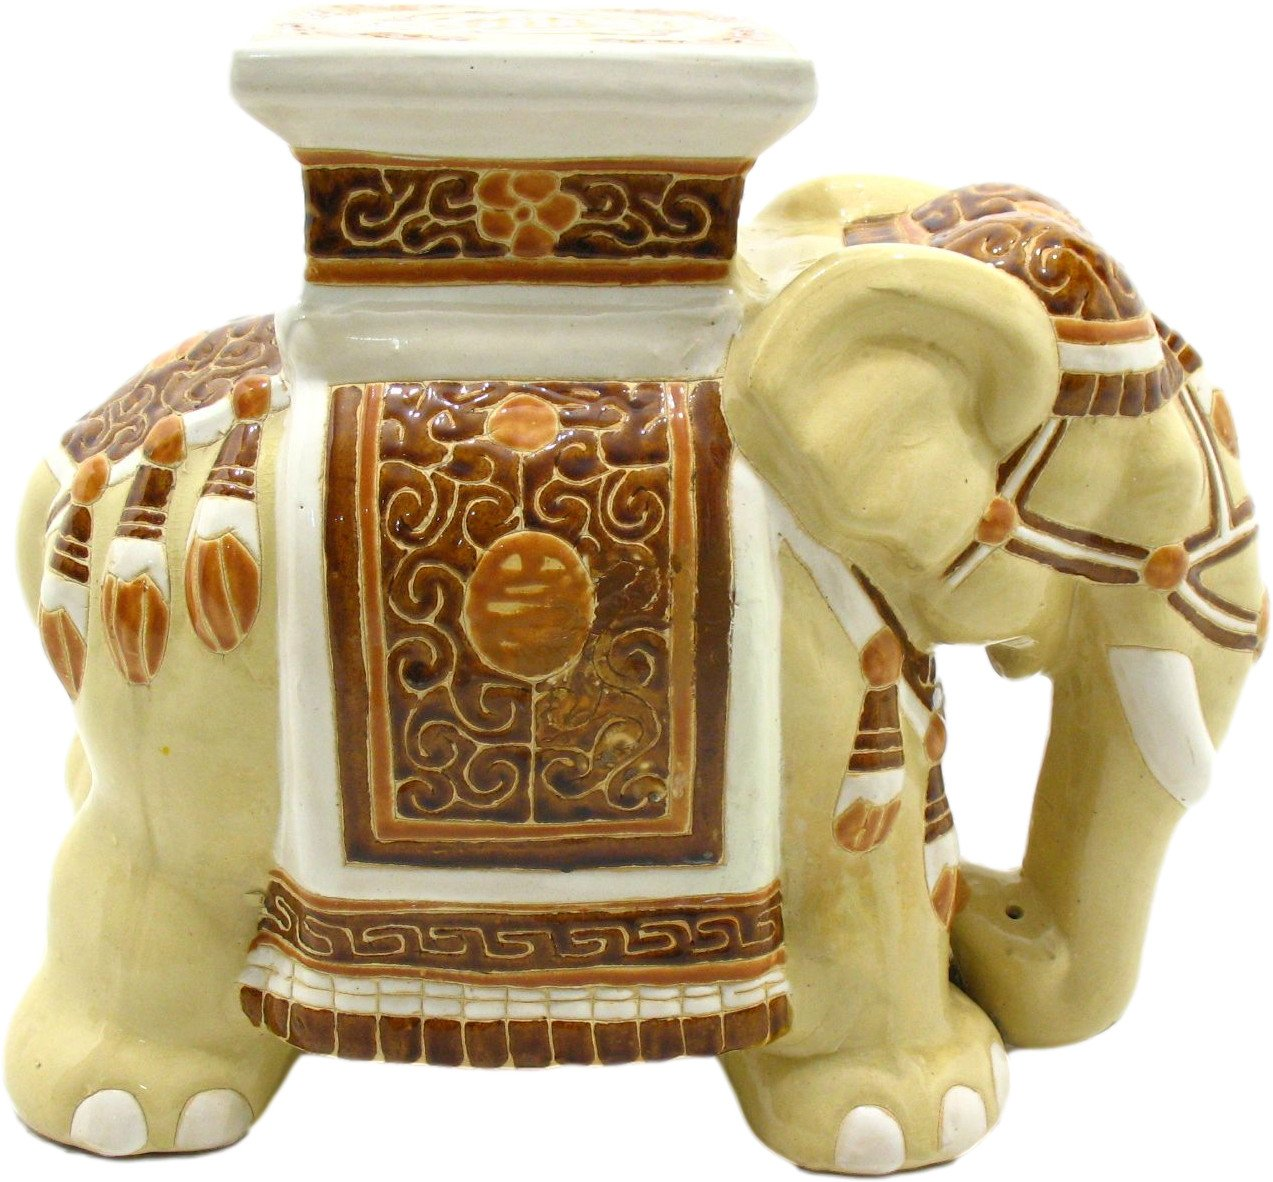 Ceramic Figurine of Elephant, 1980s